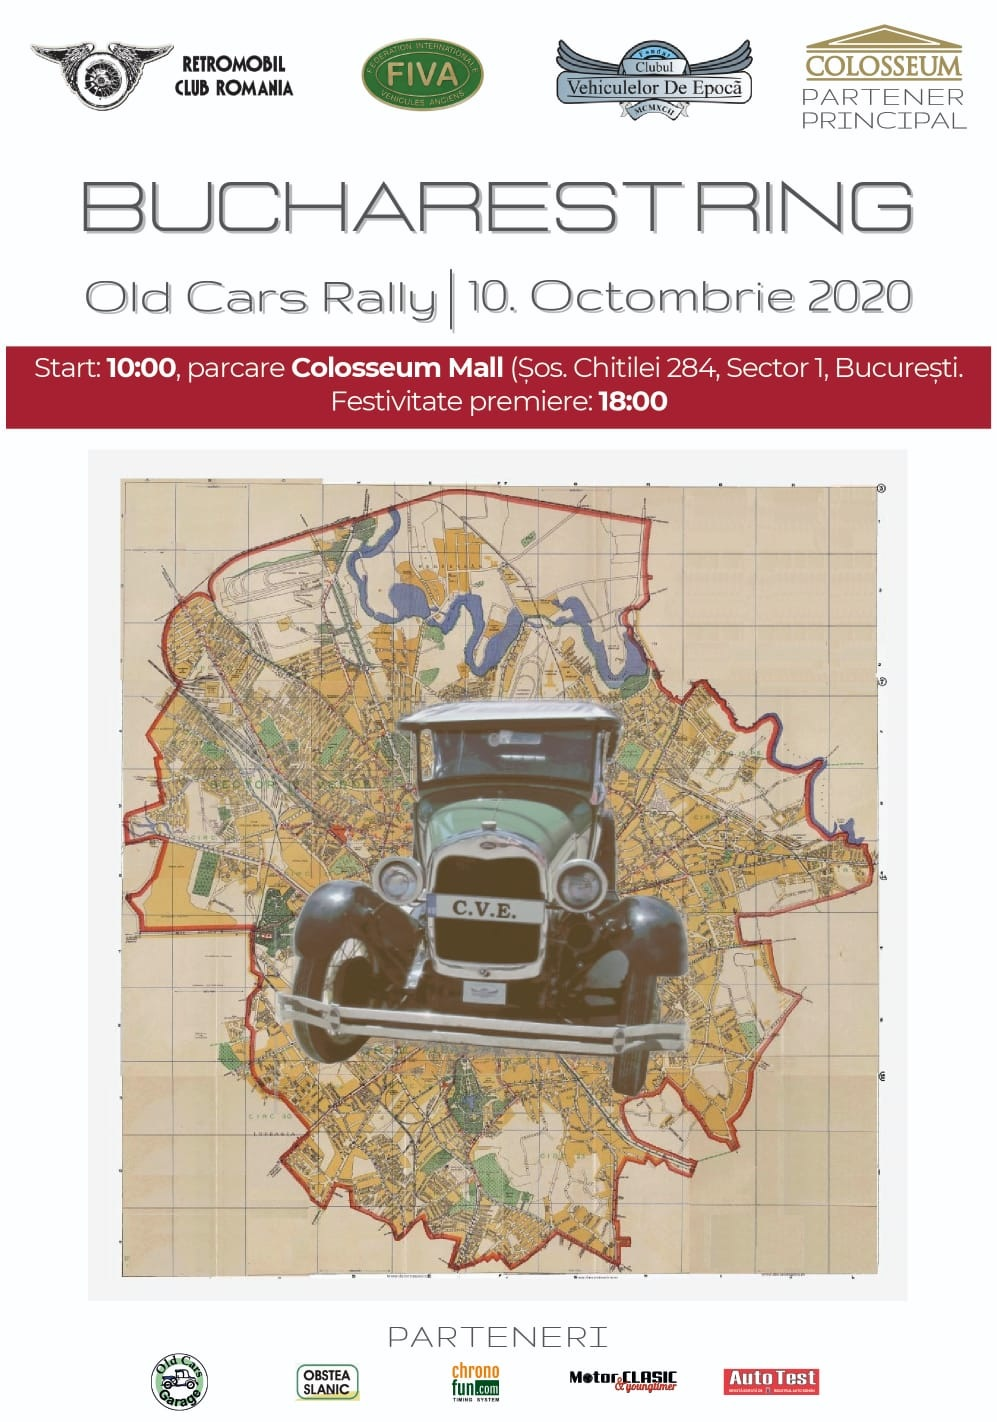 Bucharest Ring – Old Cars Rally, 10 octombrie